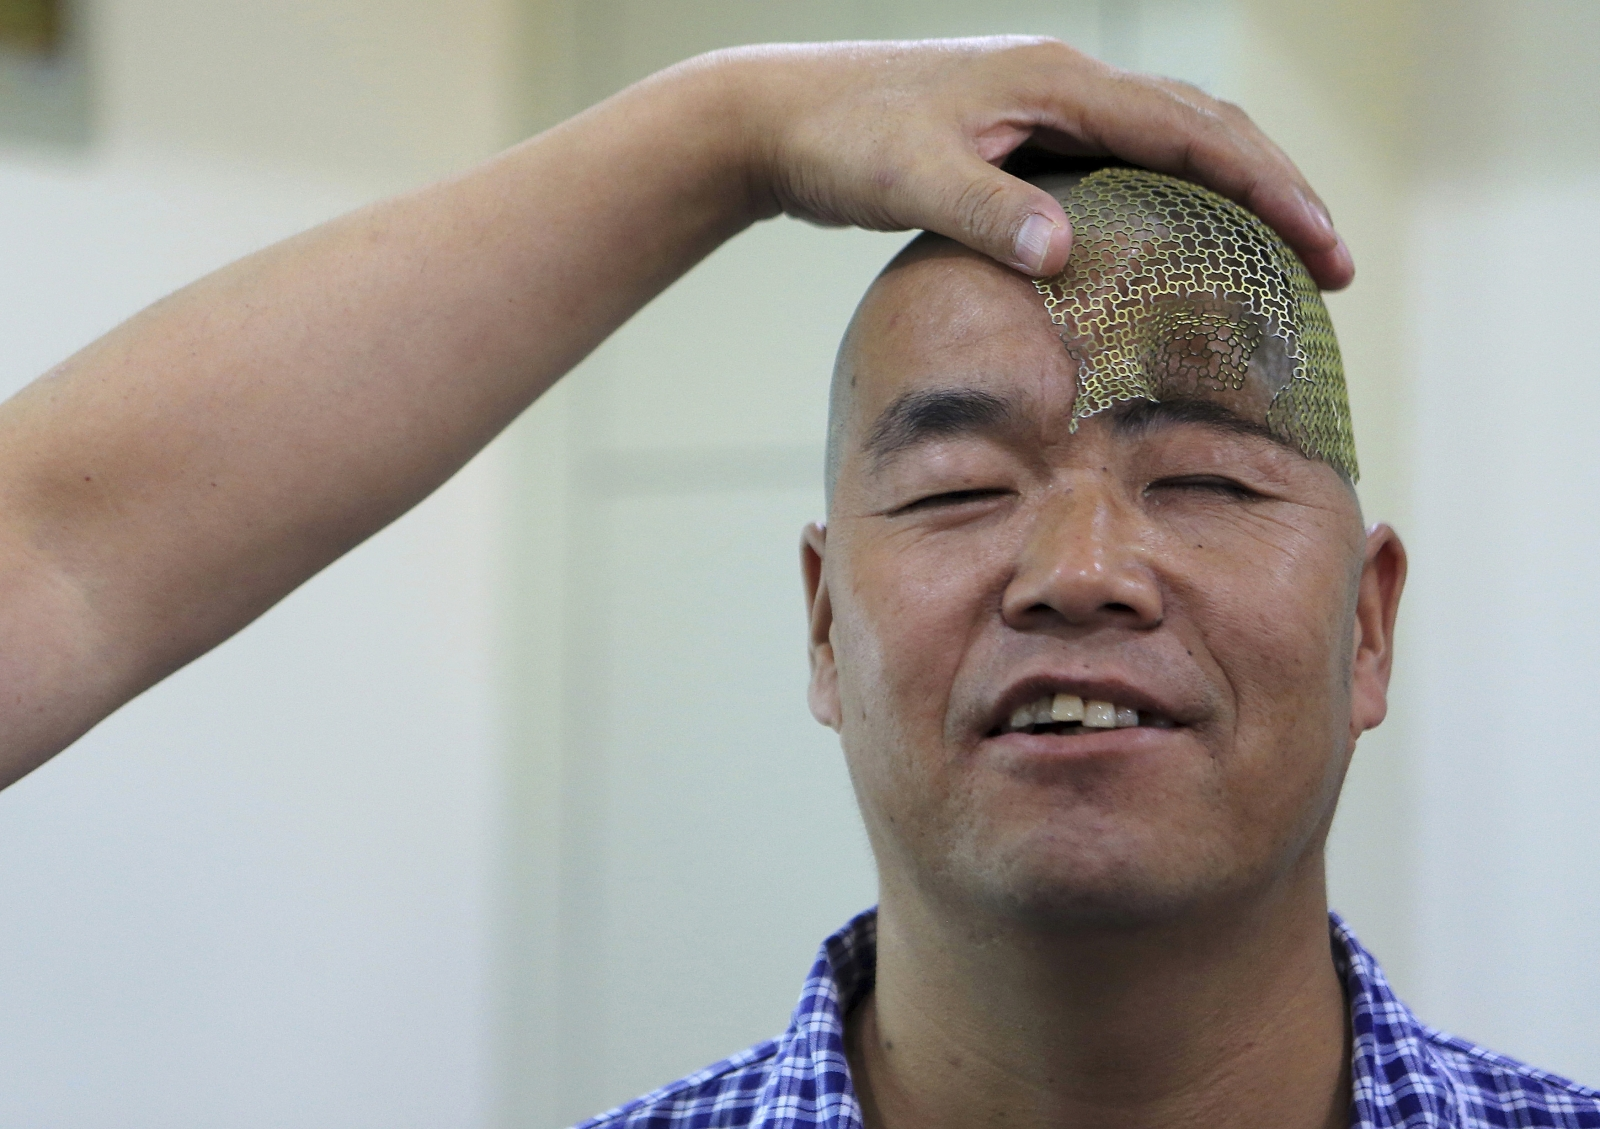 A Chinese man with only half a skull has undergone pioneering surgery to implant a titanium mesh into his head